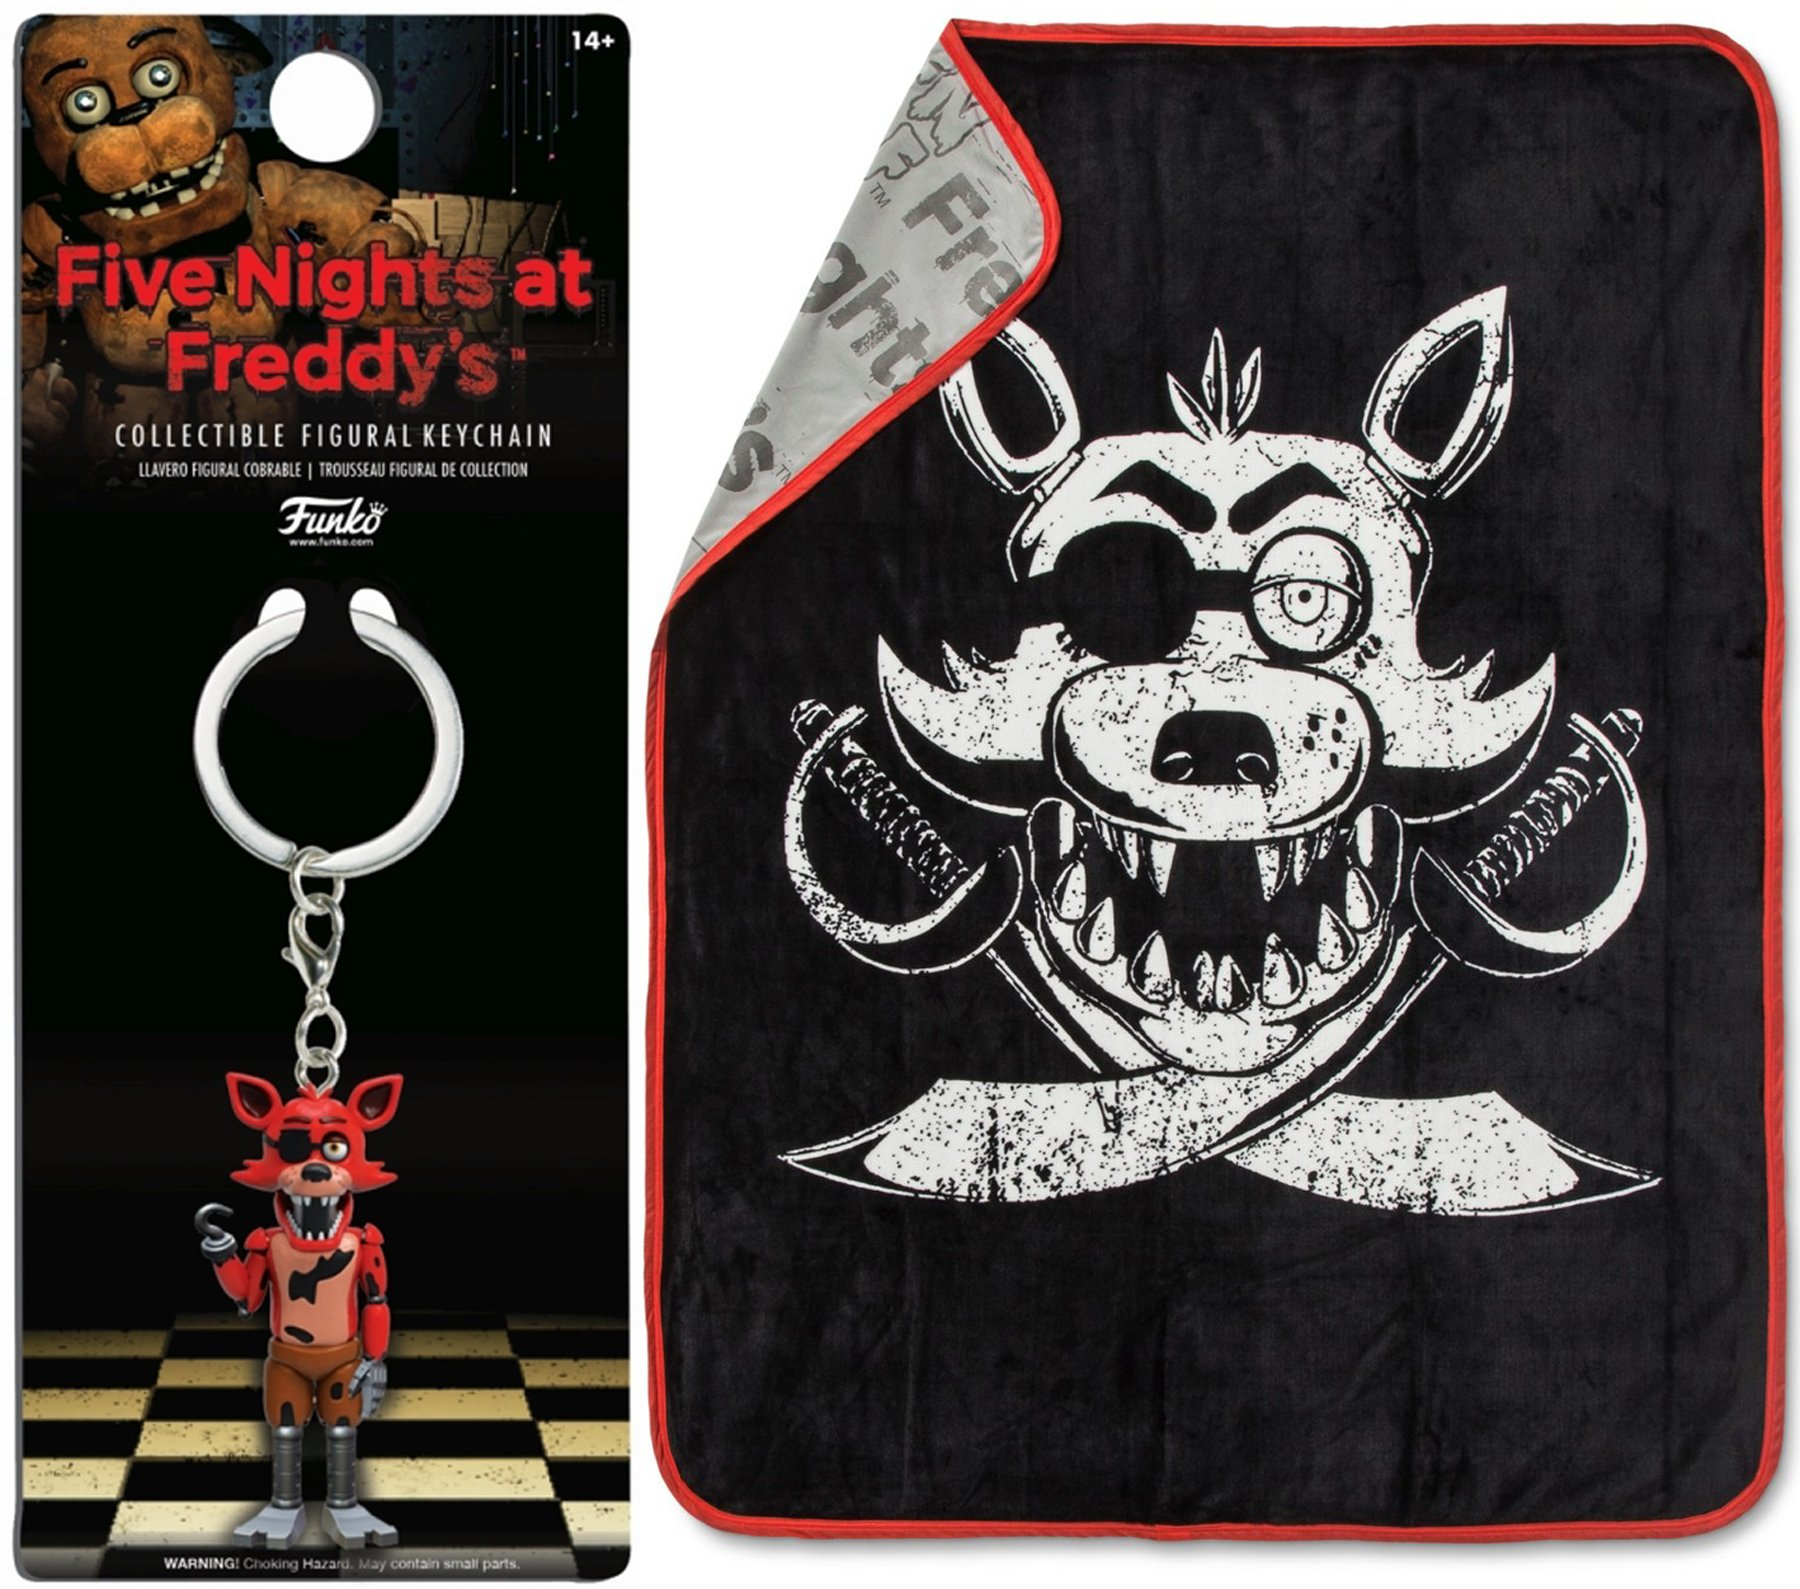 AYB Game Plush Throw Blanket Foxy Pirate design + Figural Keychain Five Nights at Freddy's Bundle